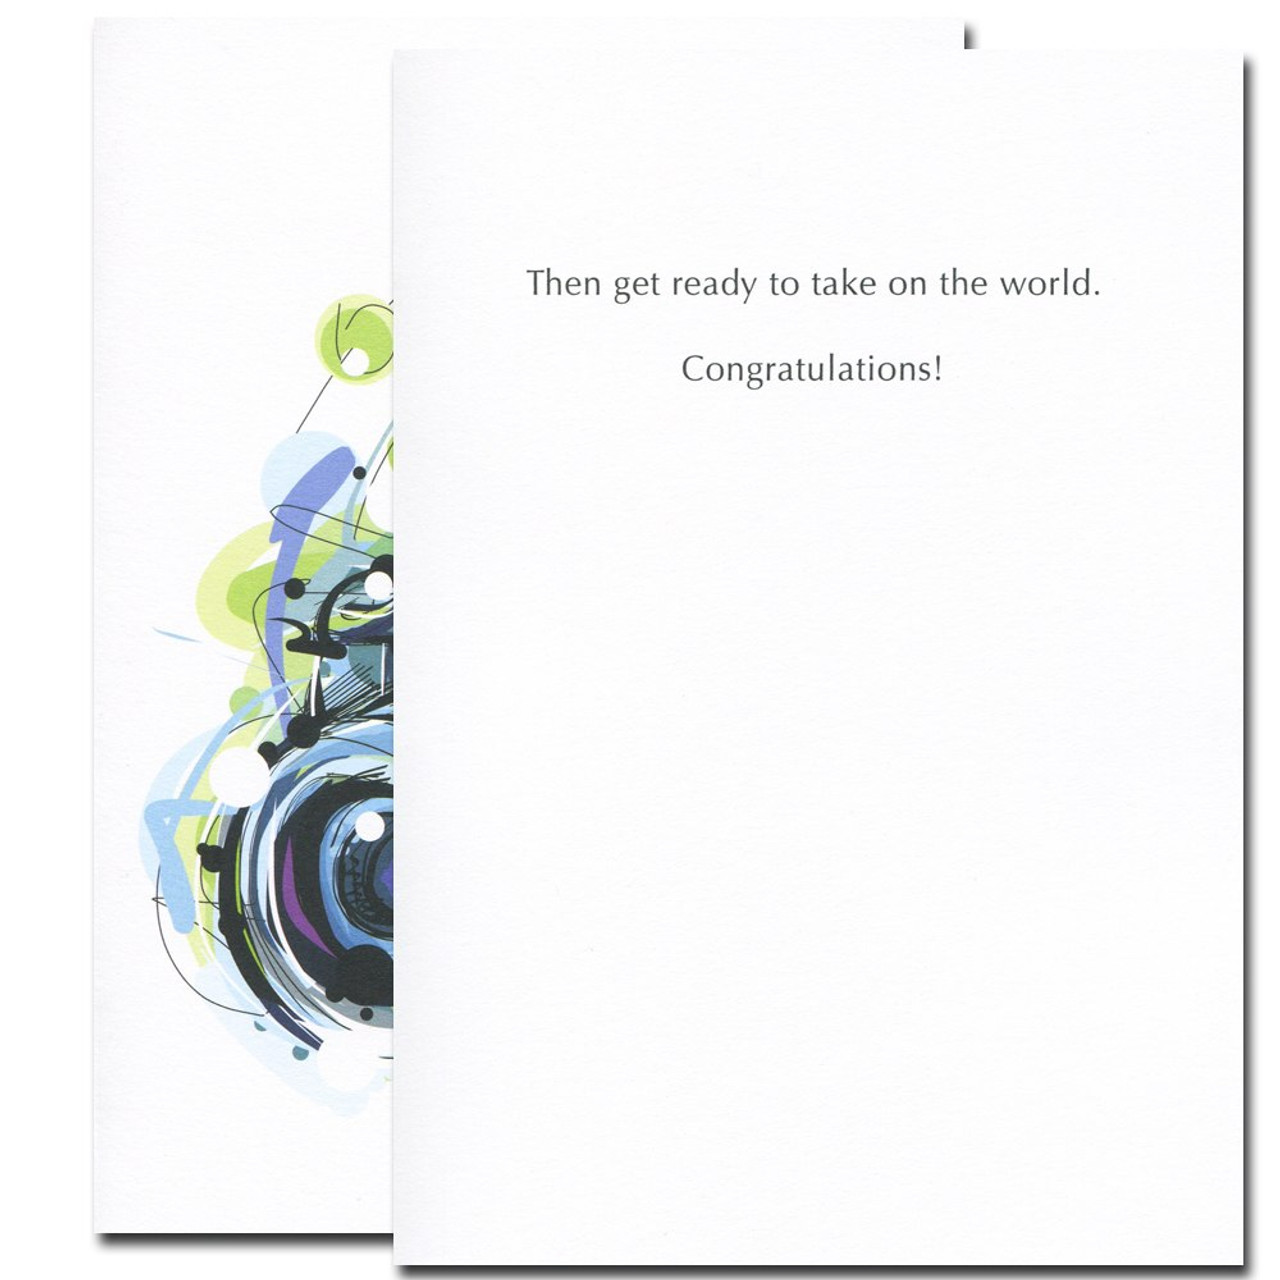 Inside of Take Pictures Congratulations Card reads: Then get ready to take on the world. Congratulations!